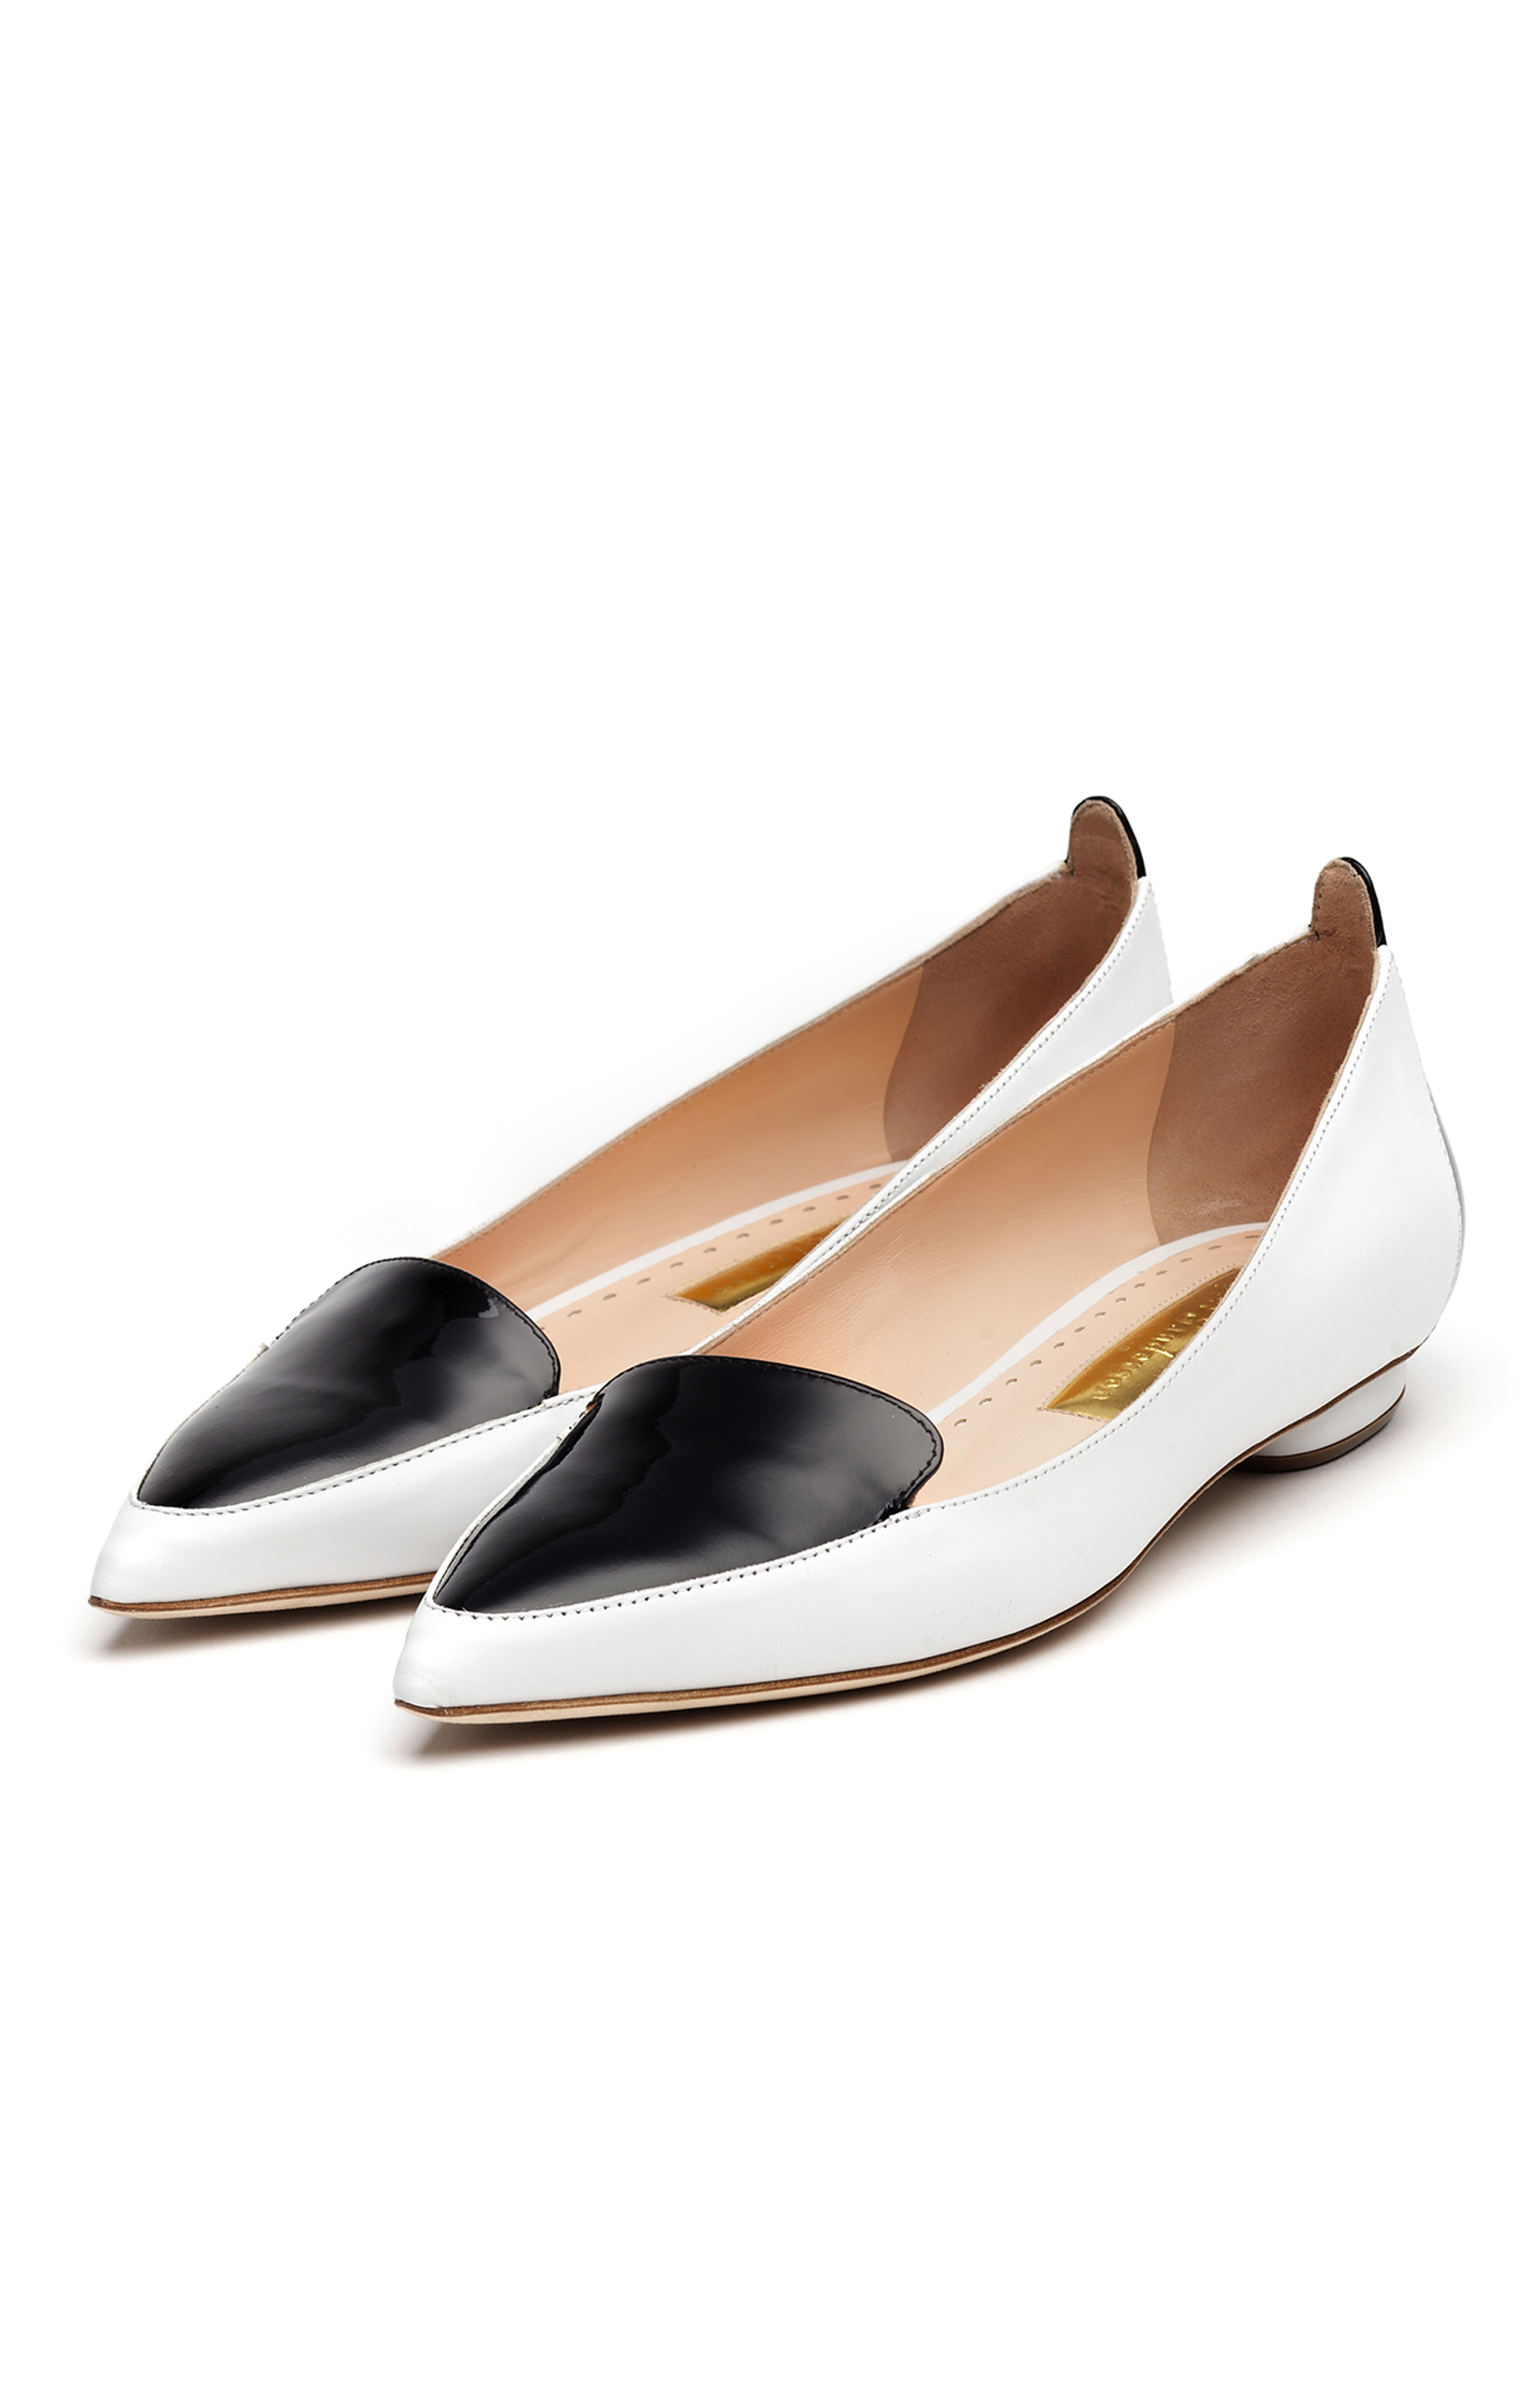 Rupert Sanderson<br>Ohio White calf - black patent PAIR